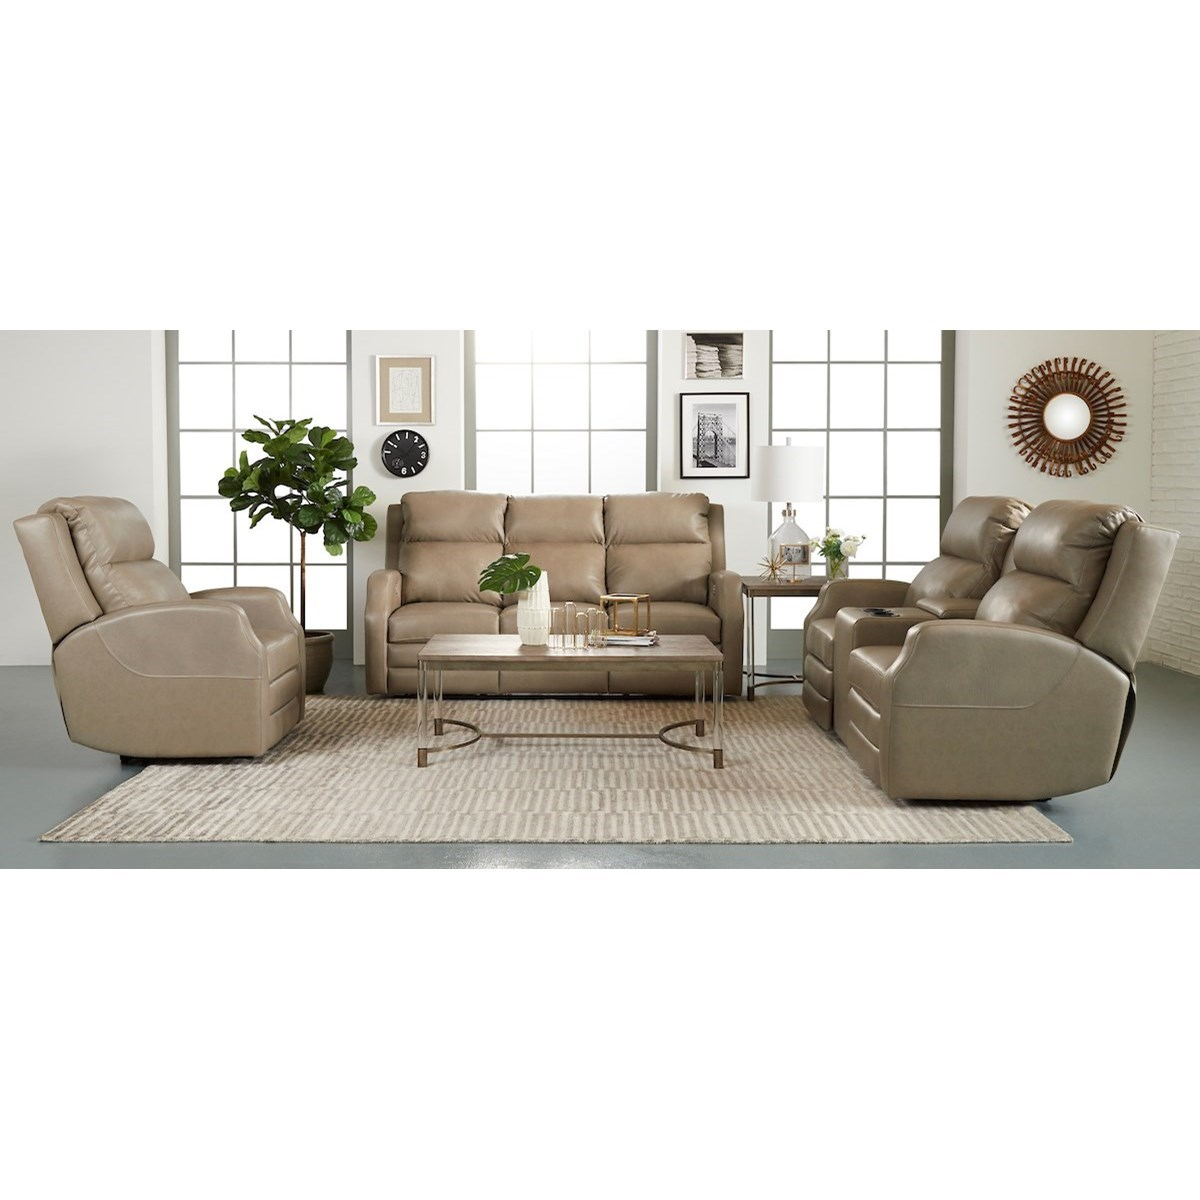 Kamiah Reclining Living Room Group by Klaussner at Catalog Outlet